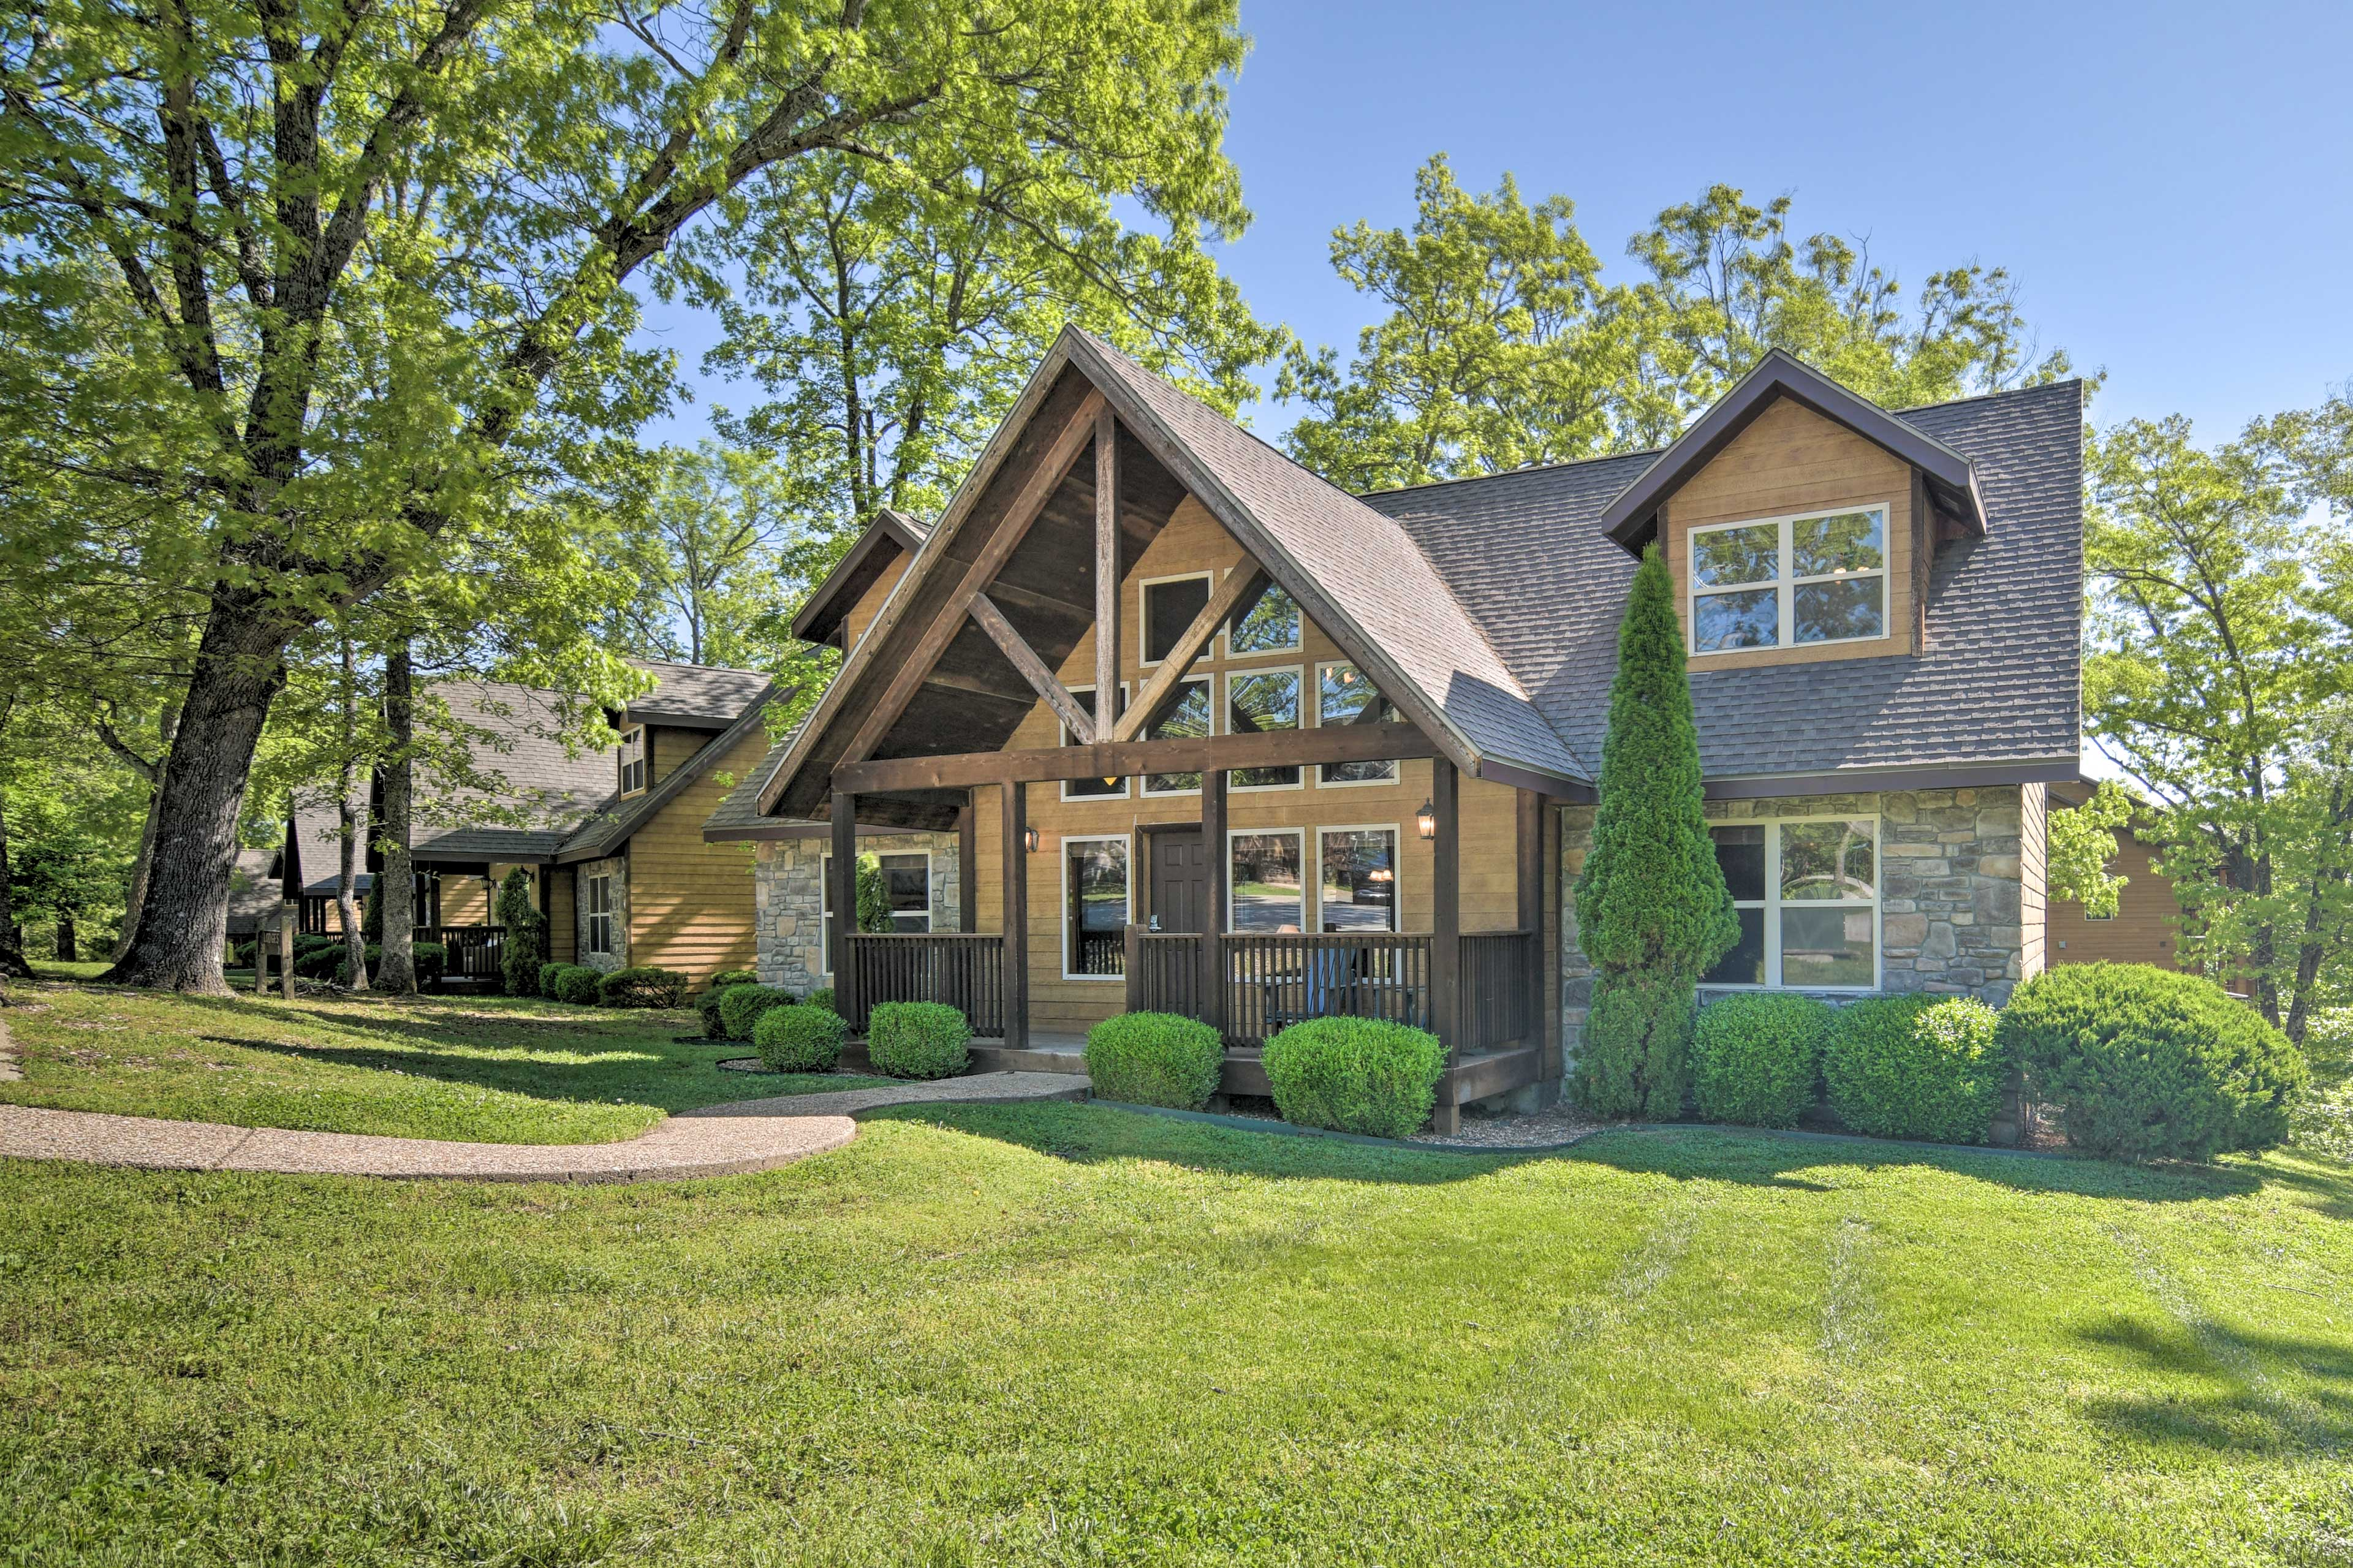 Branson Vacation Rental Home   4BR   4BA   3,200 Sq Ft   Step-Free Access